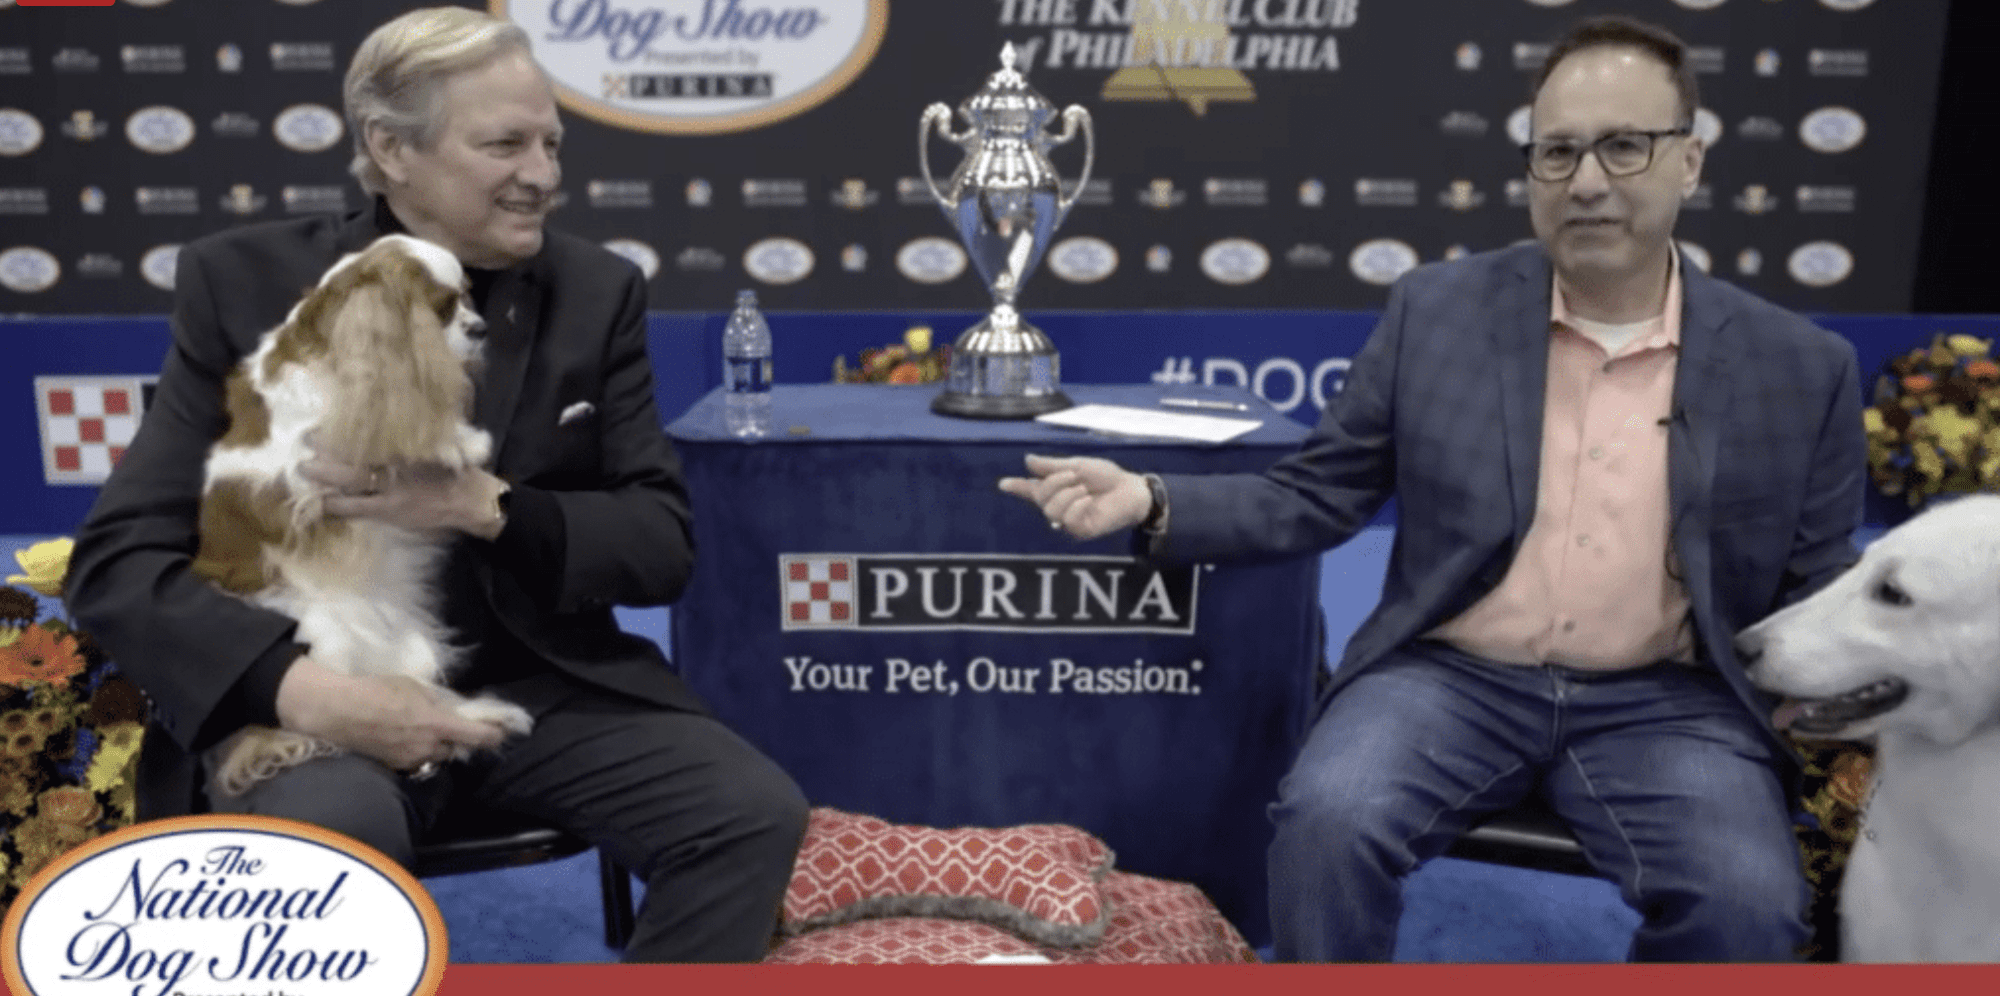 David Frei and Steve Dale from the National Dog Show Presented by Purina